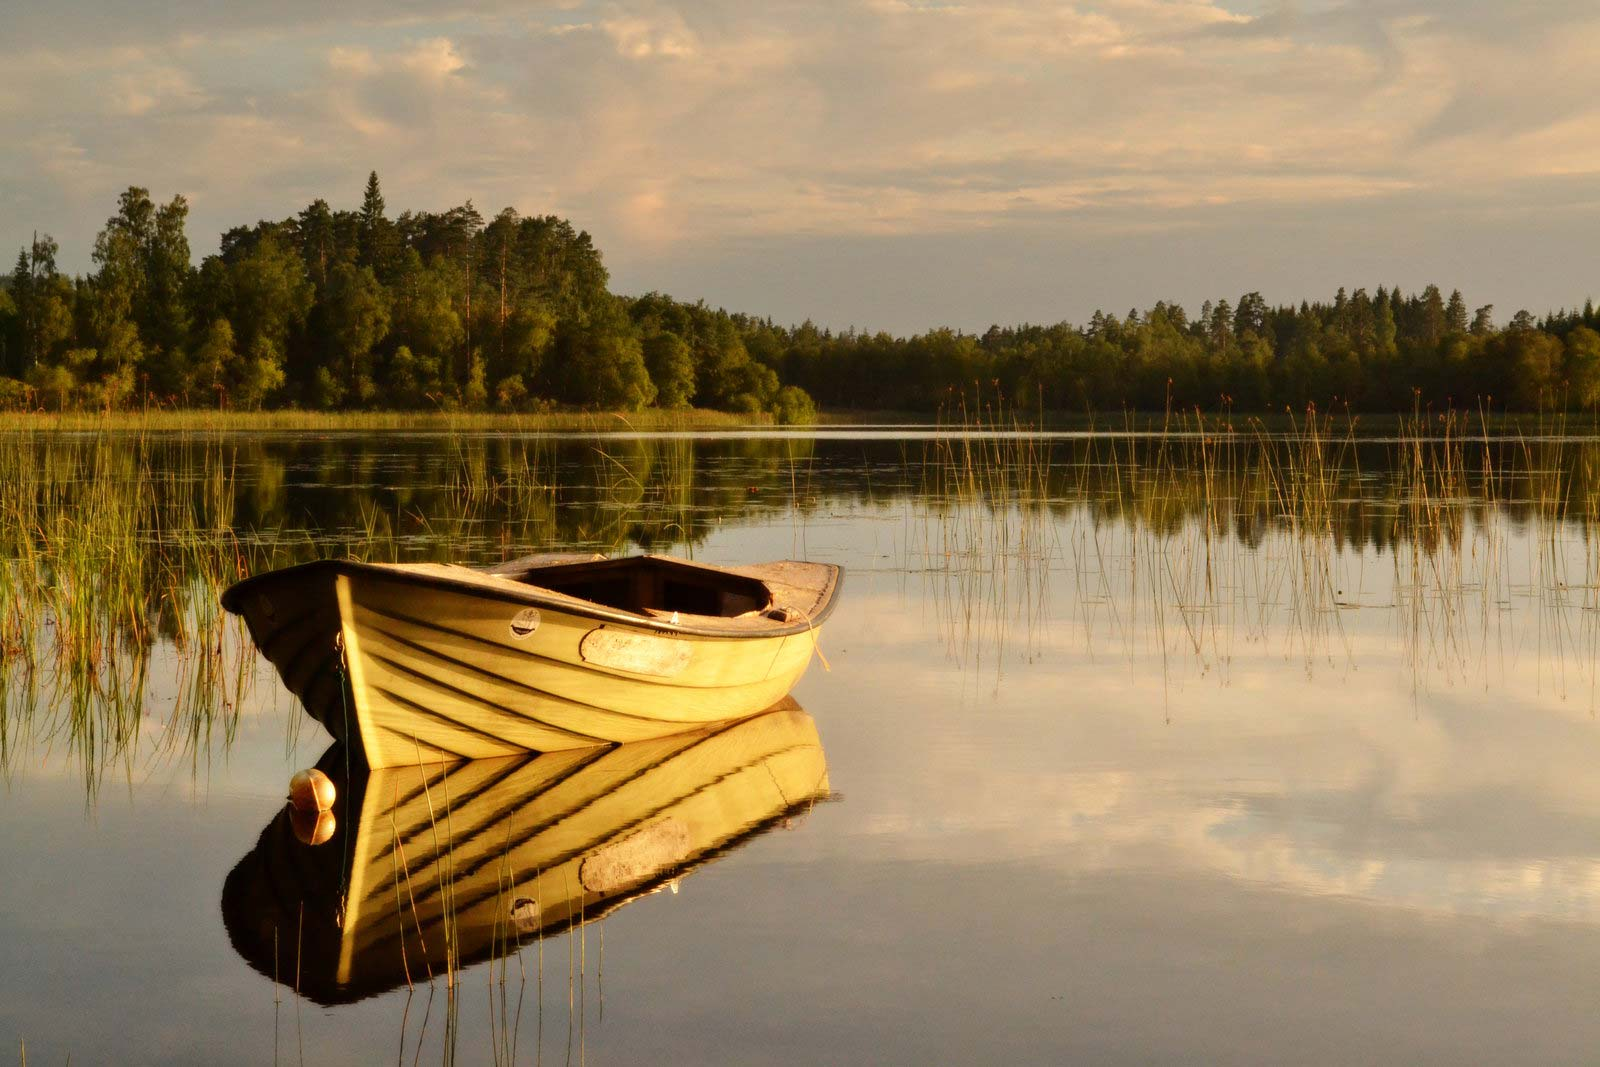 lake_boat_by_lembrant-d6h834x-1